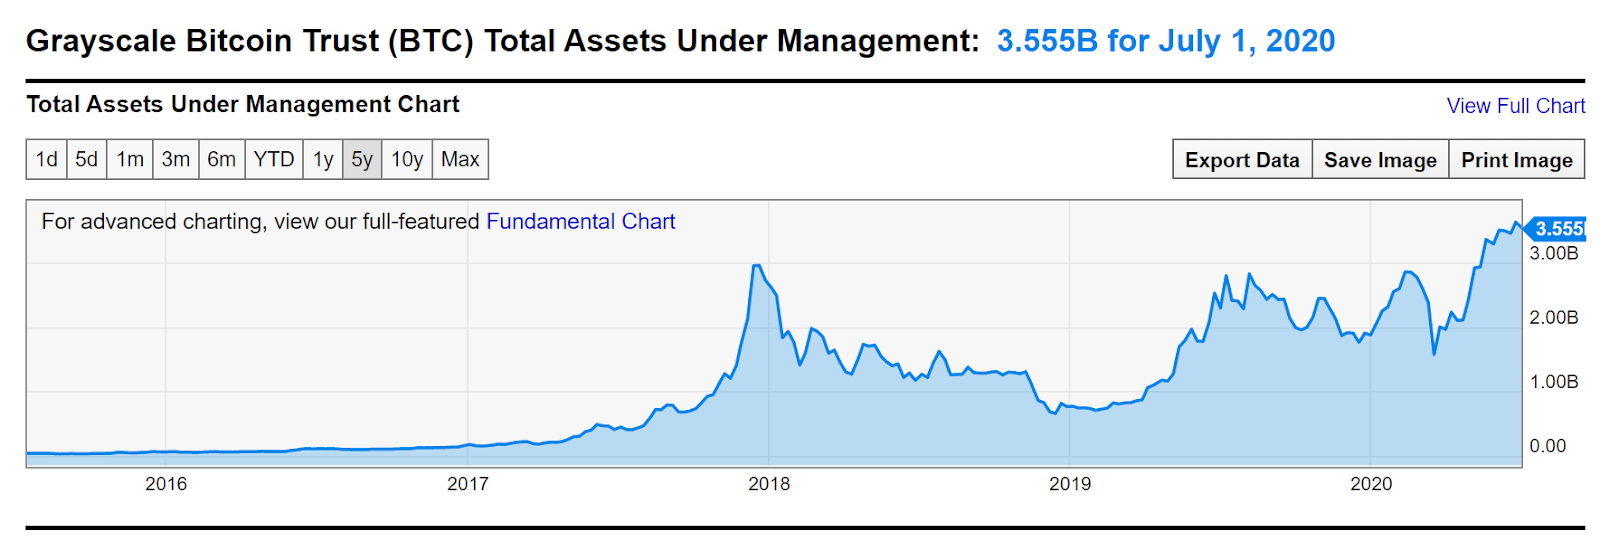 The Grayscale Bitcoin Trust assets under management